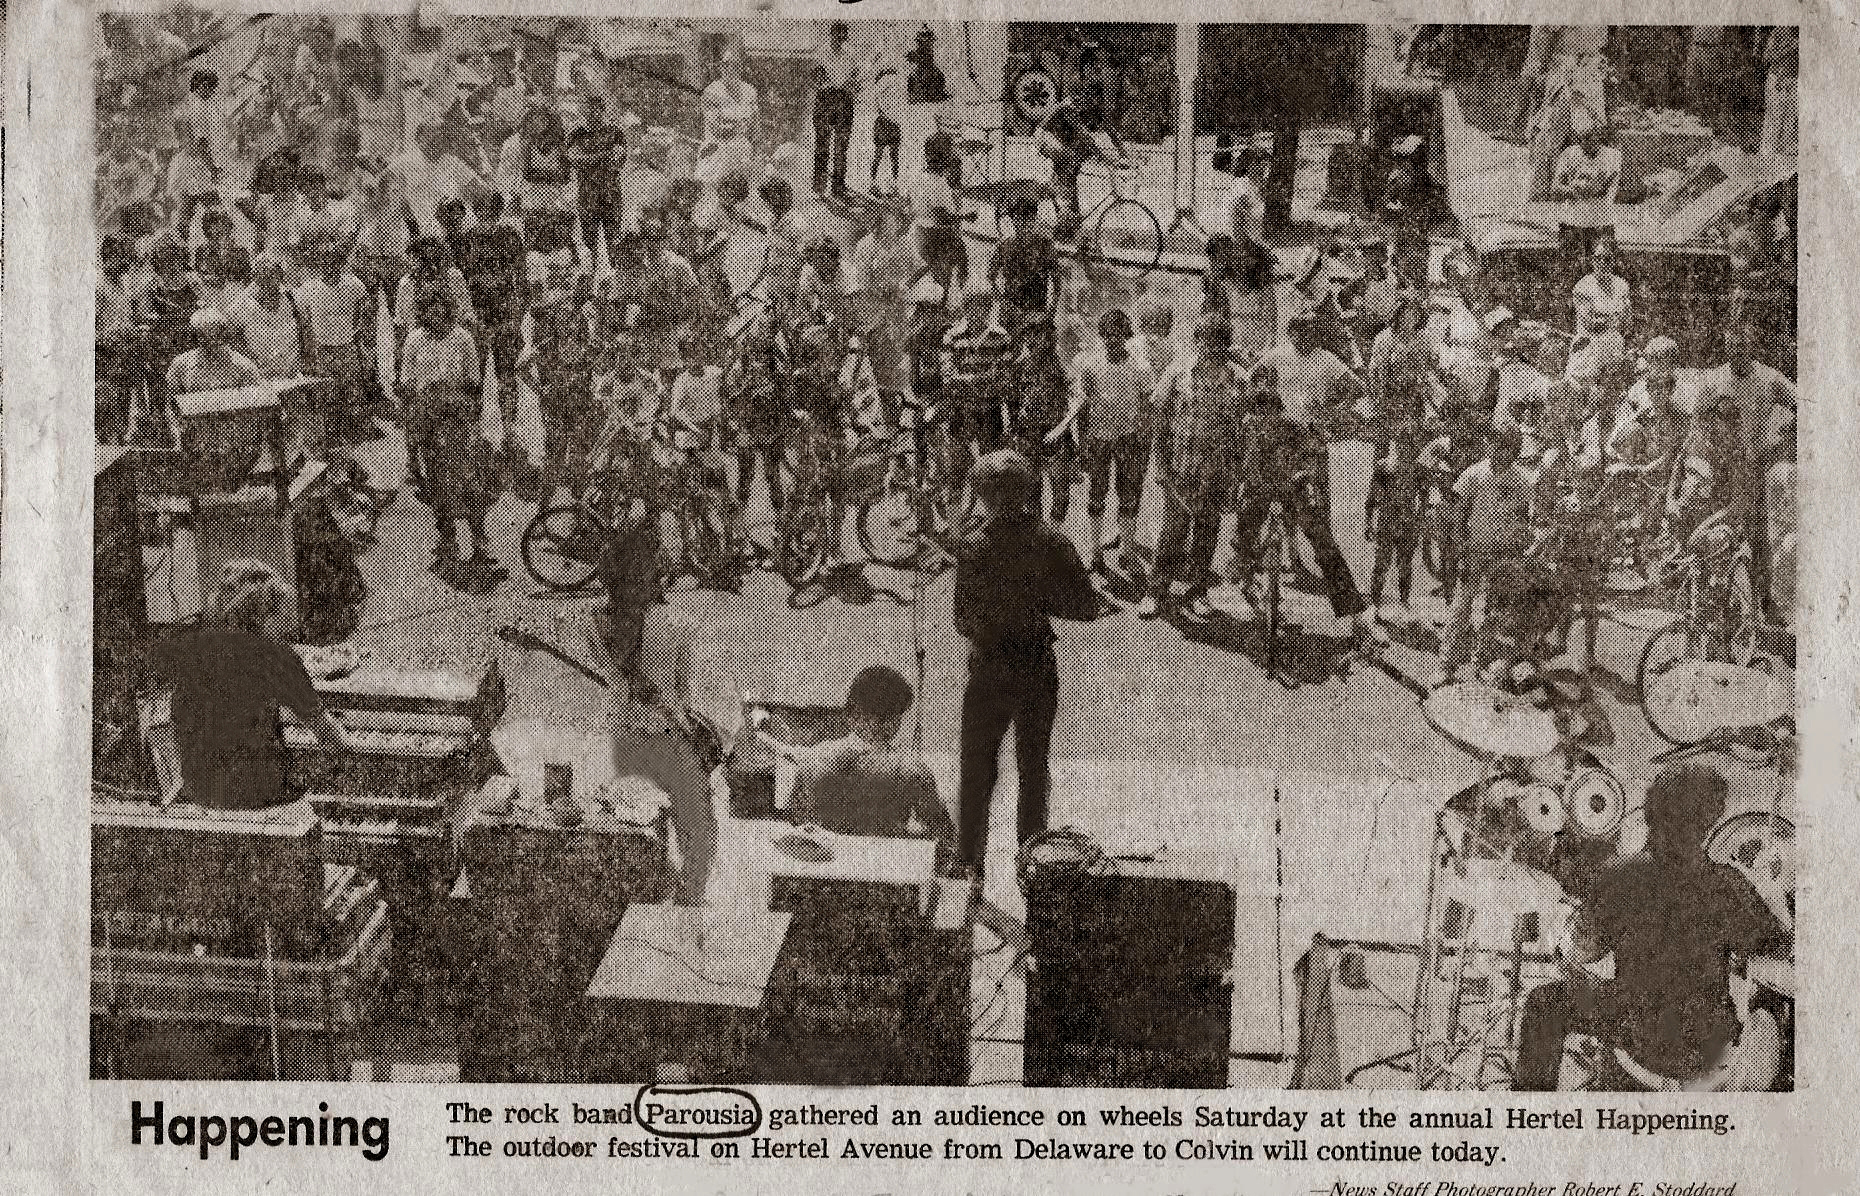 Buffalo Evening News  - Hertel Happening 08.01.1981. Delaware to Colvin Ave